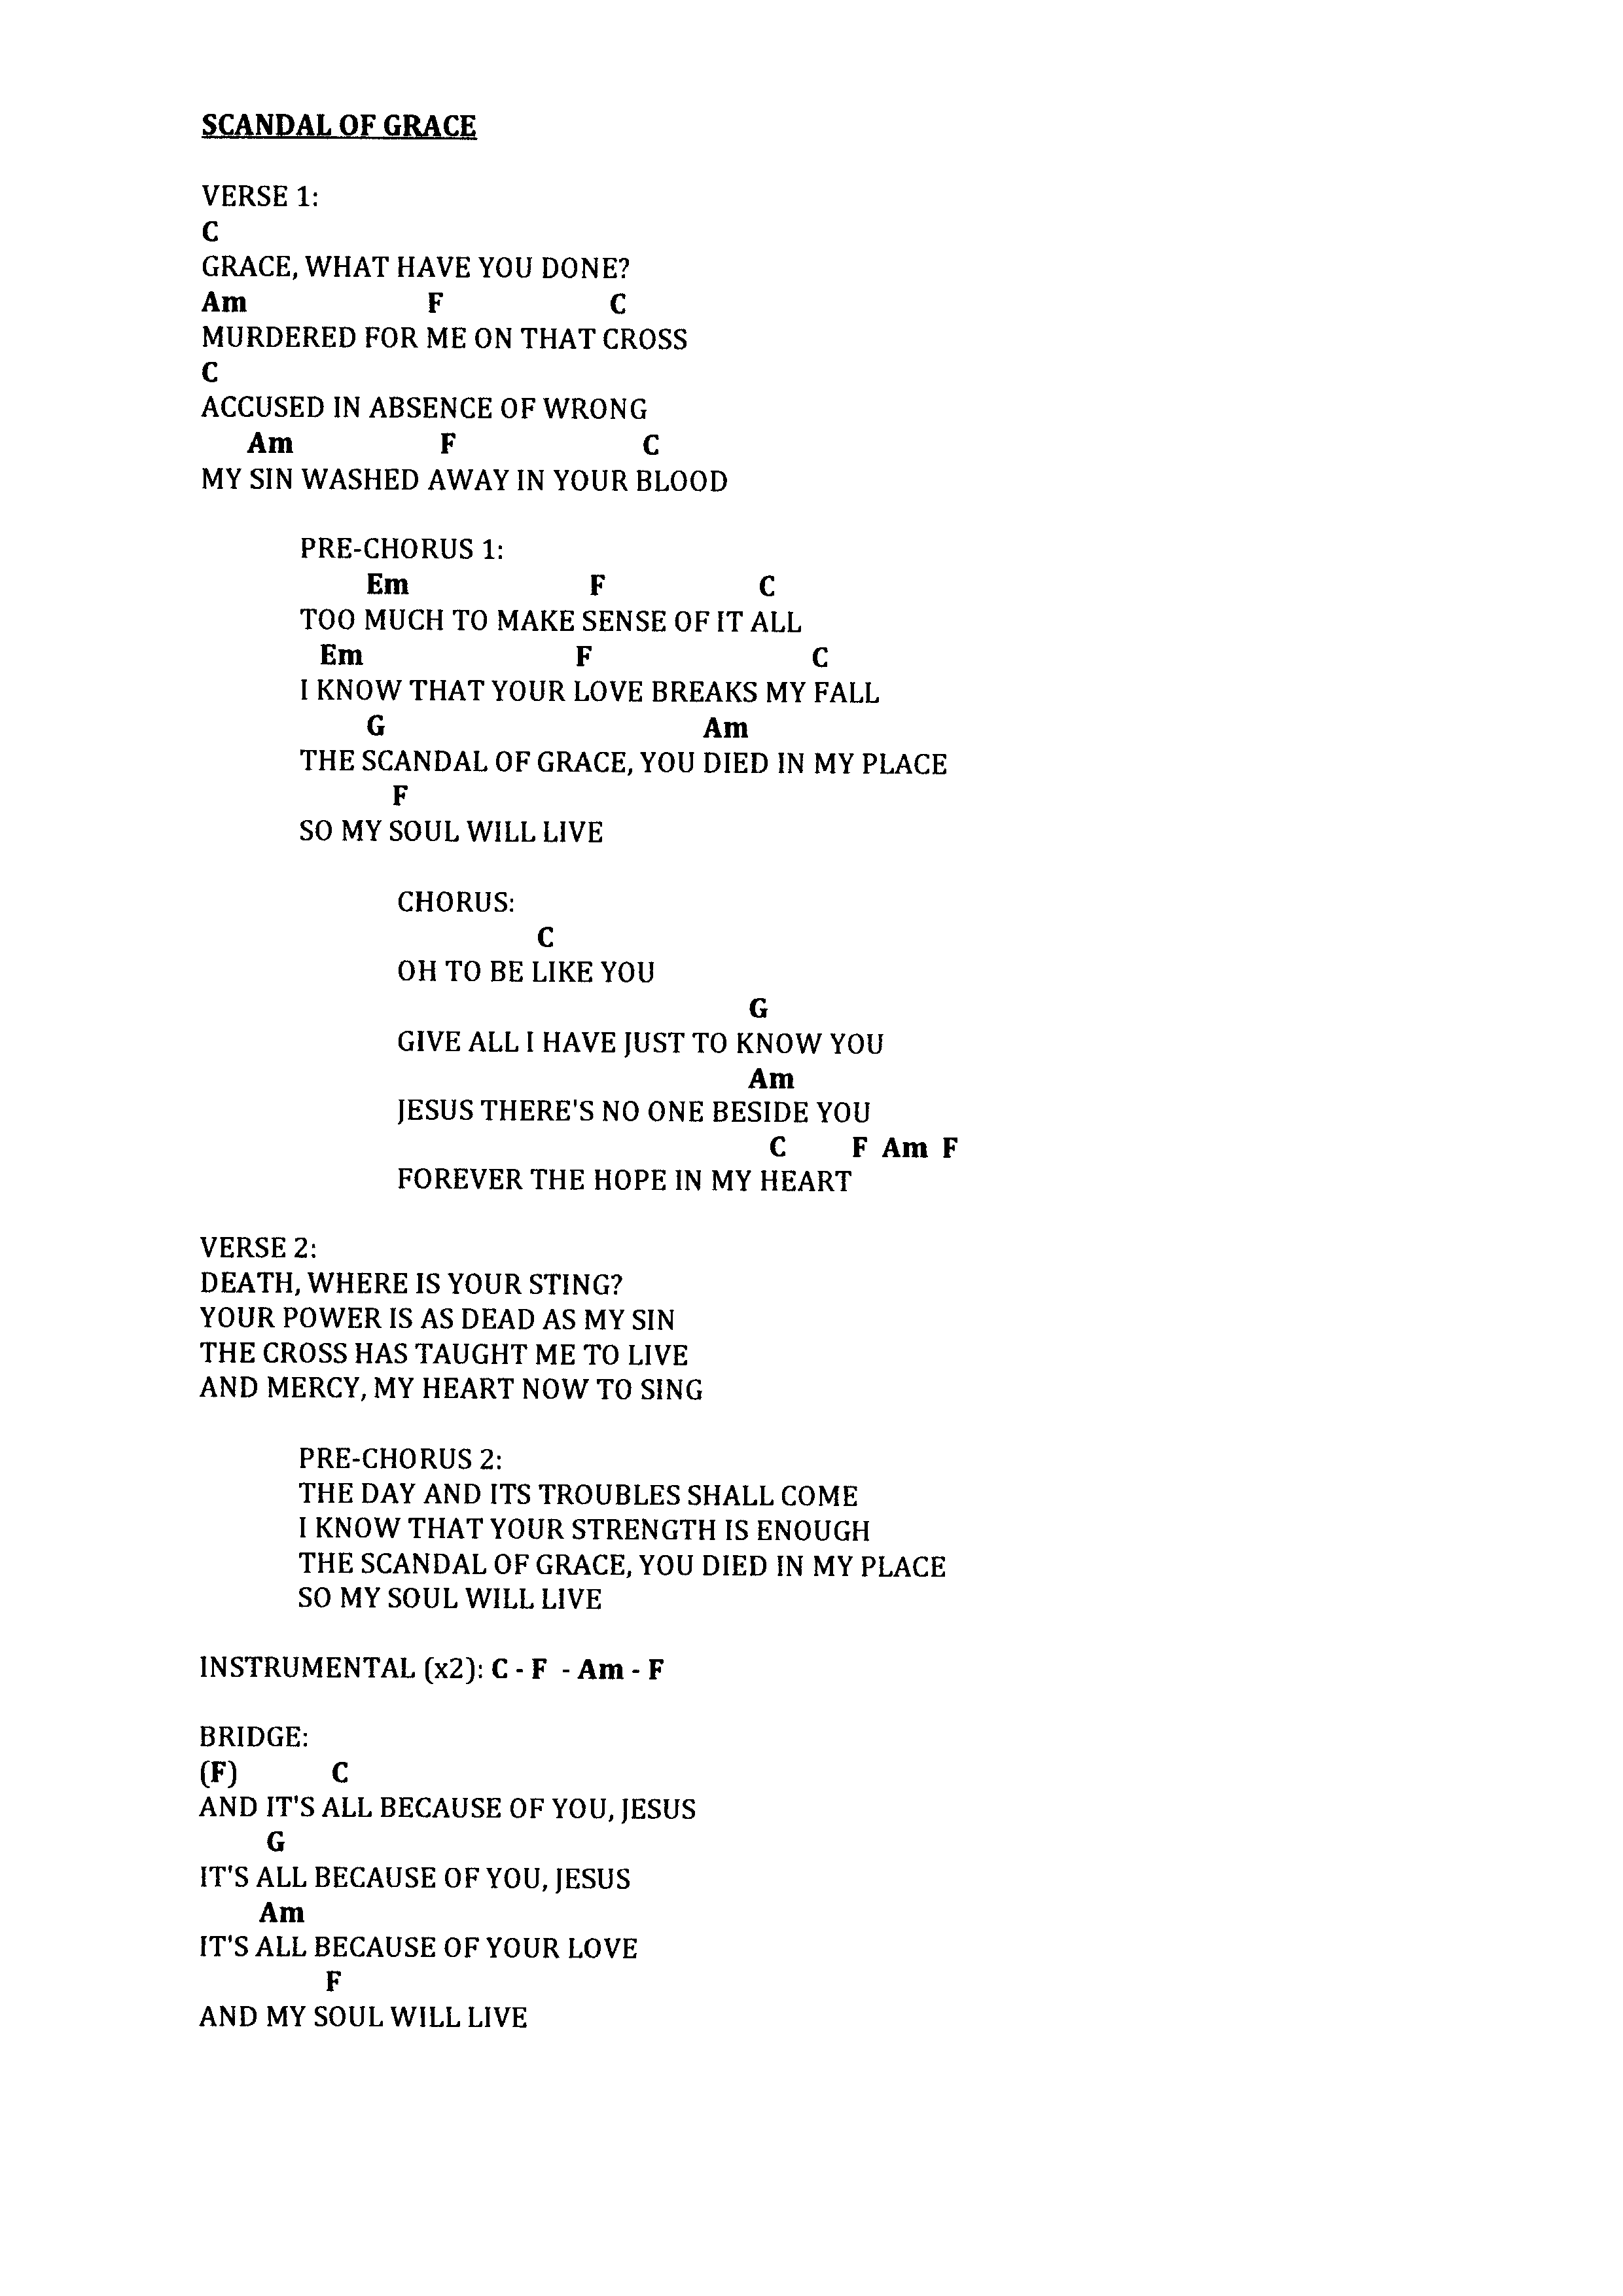 Praise worship chords page 3 the idiot in me scandal of grace c hexwebz Choice Image